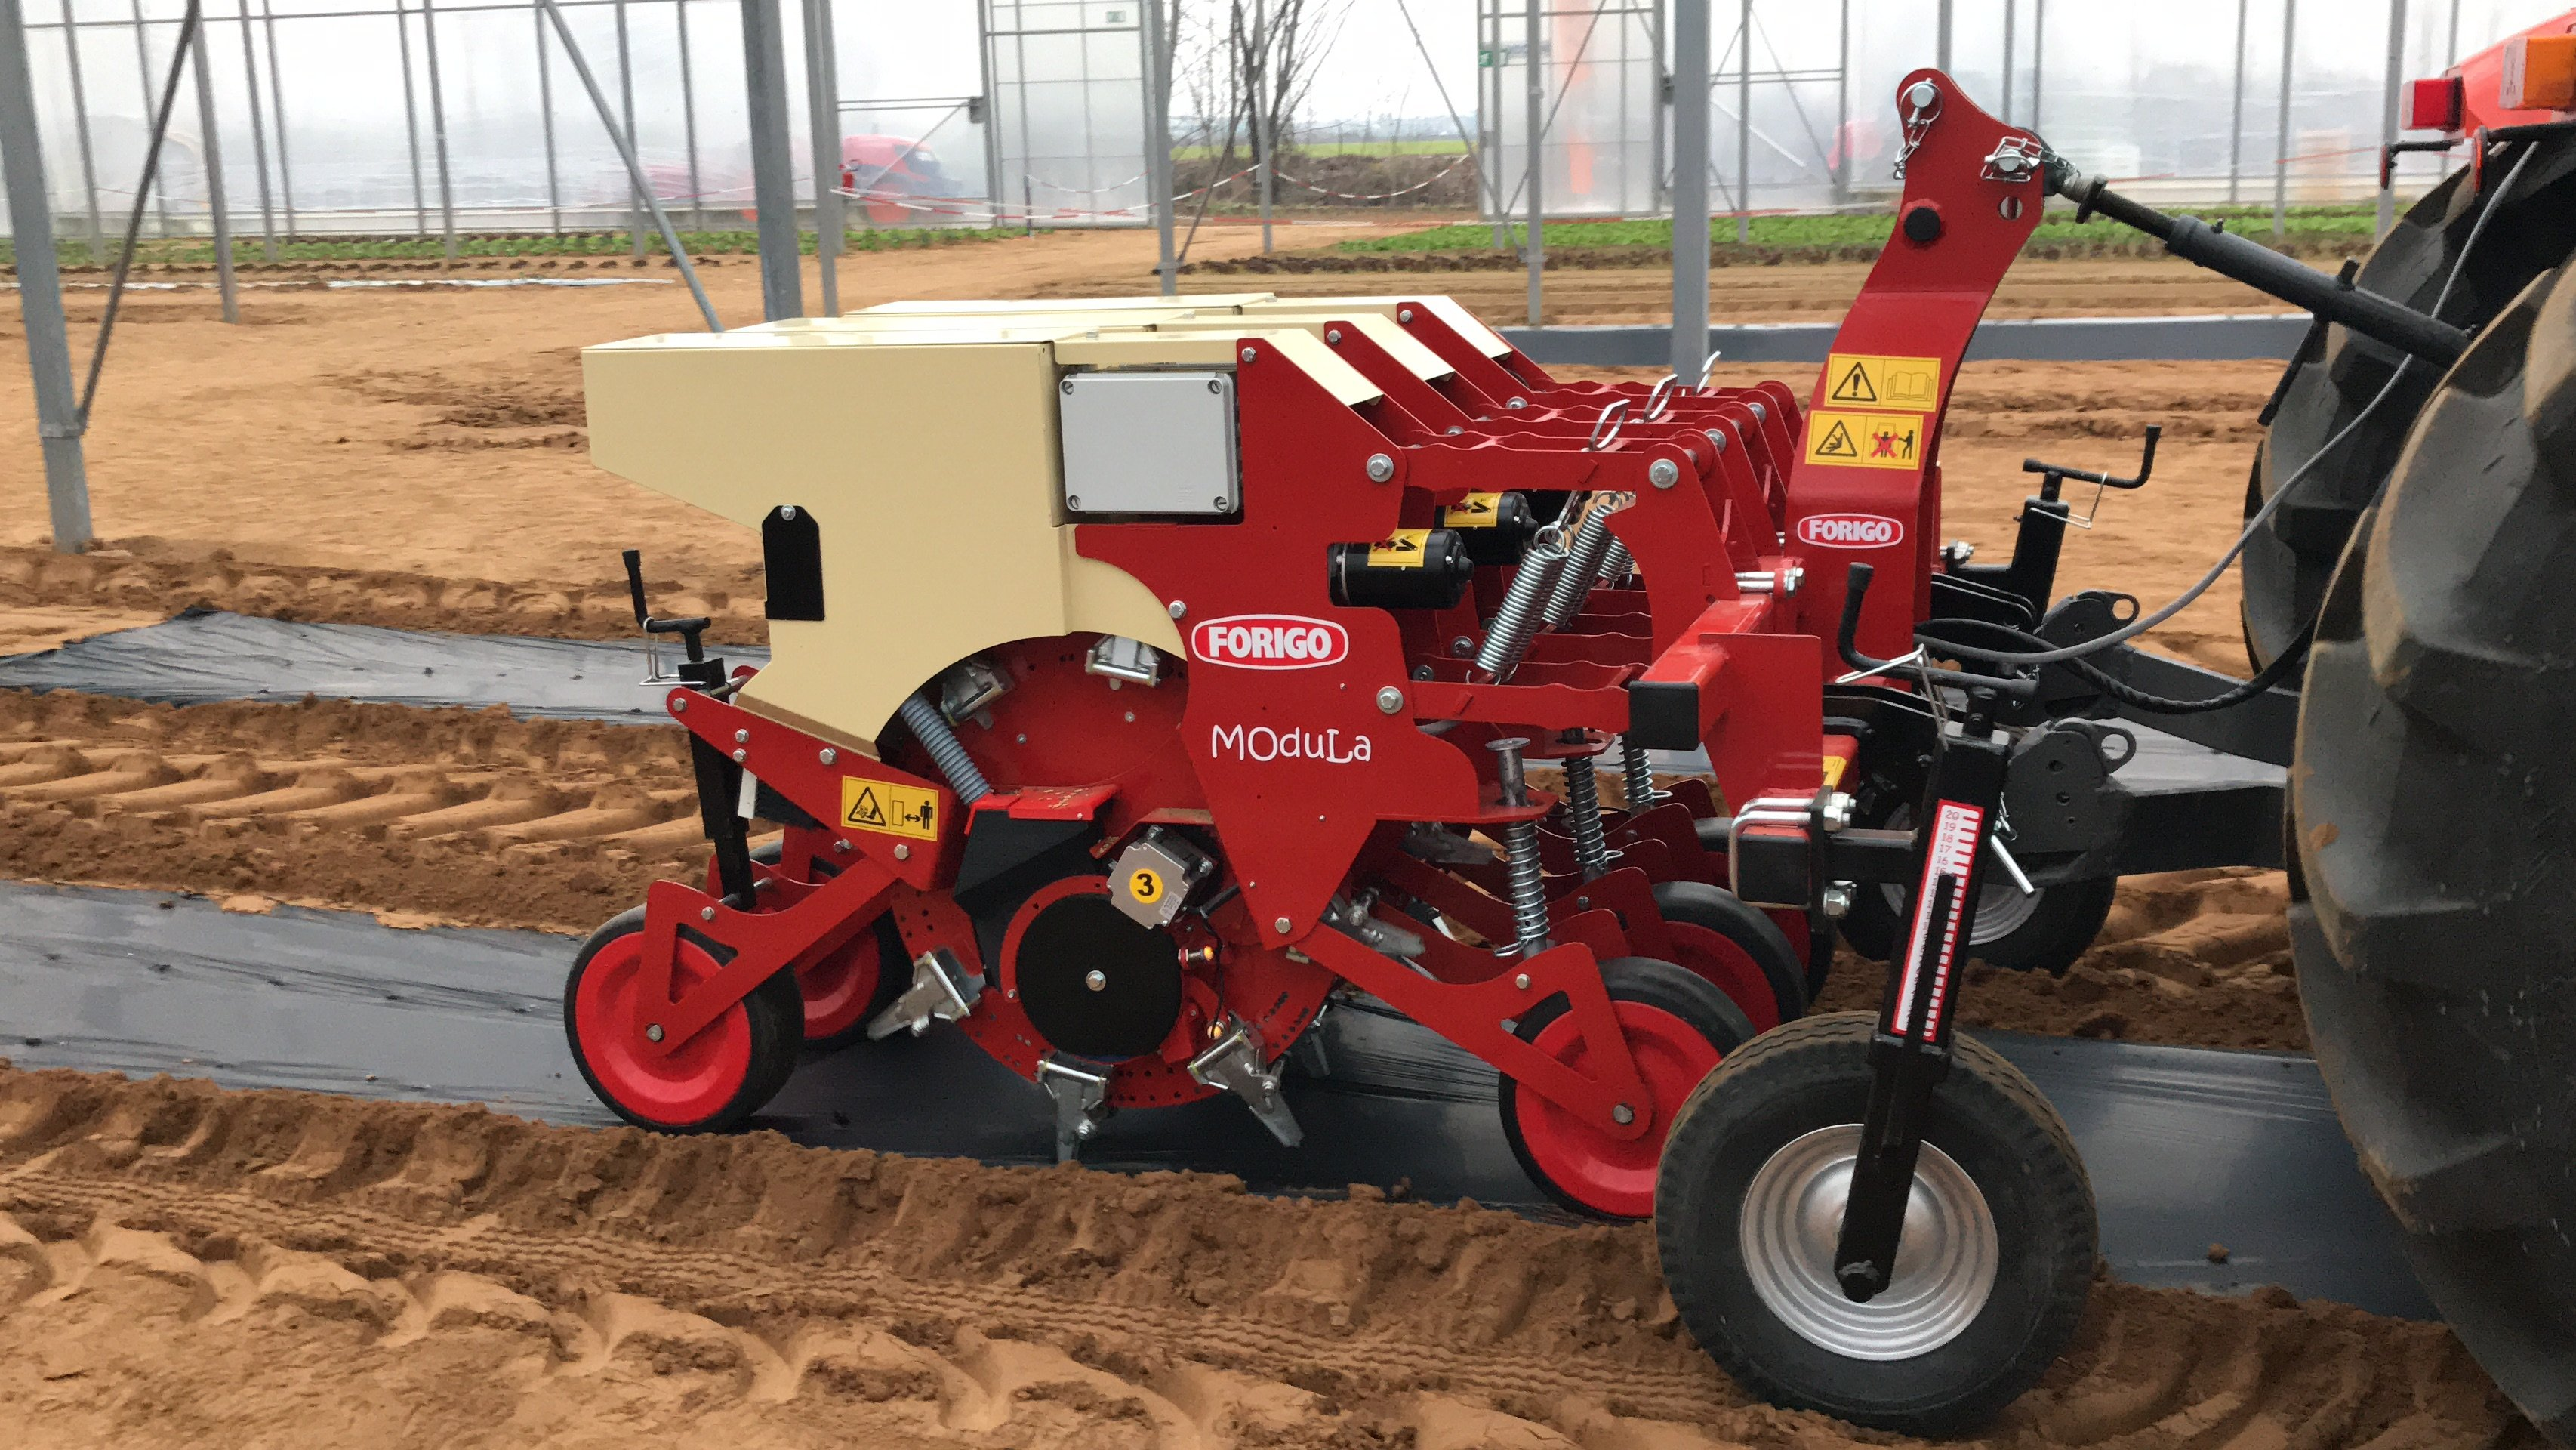 Modula, the precision seed drill marked Forigo